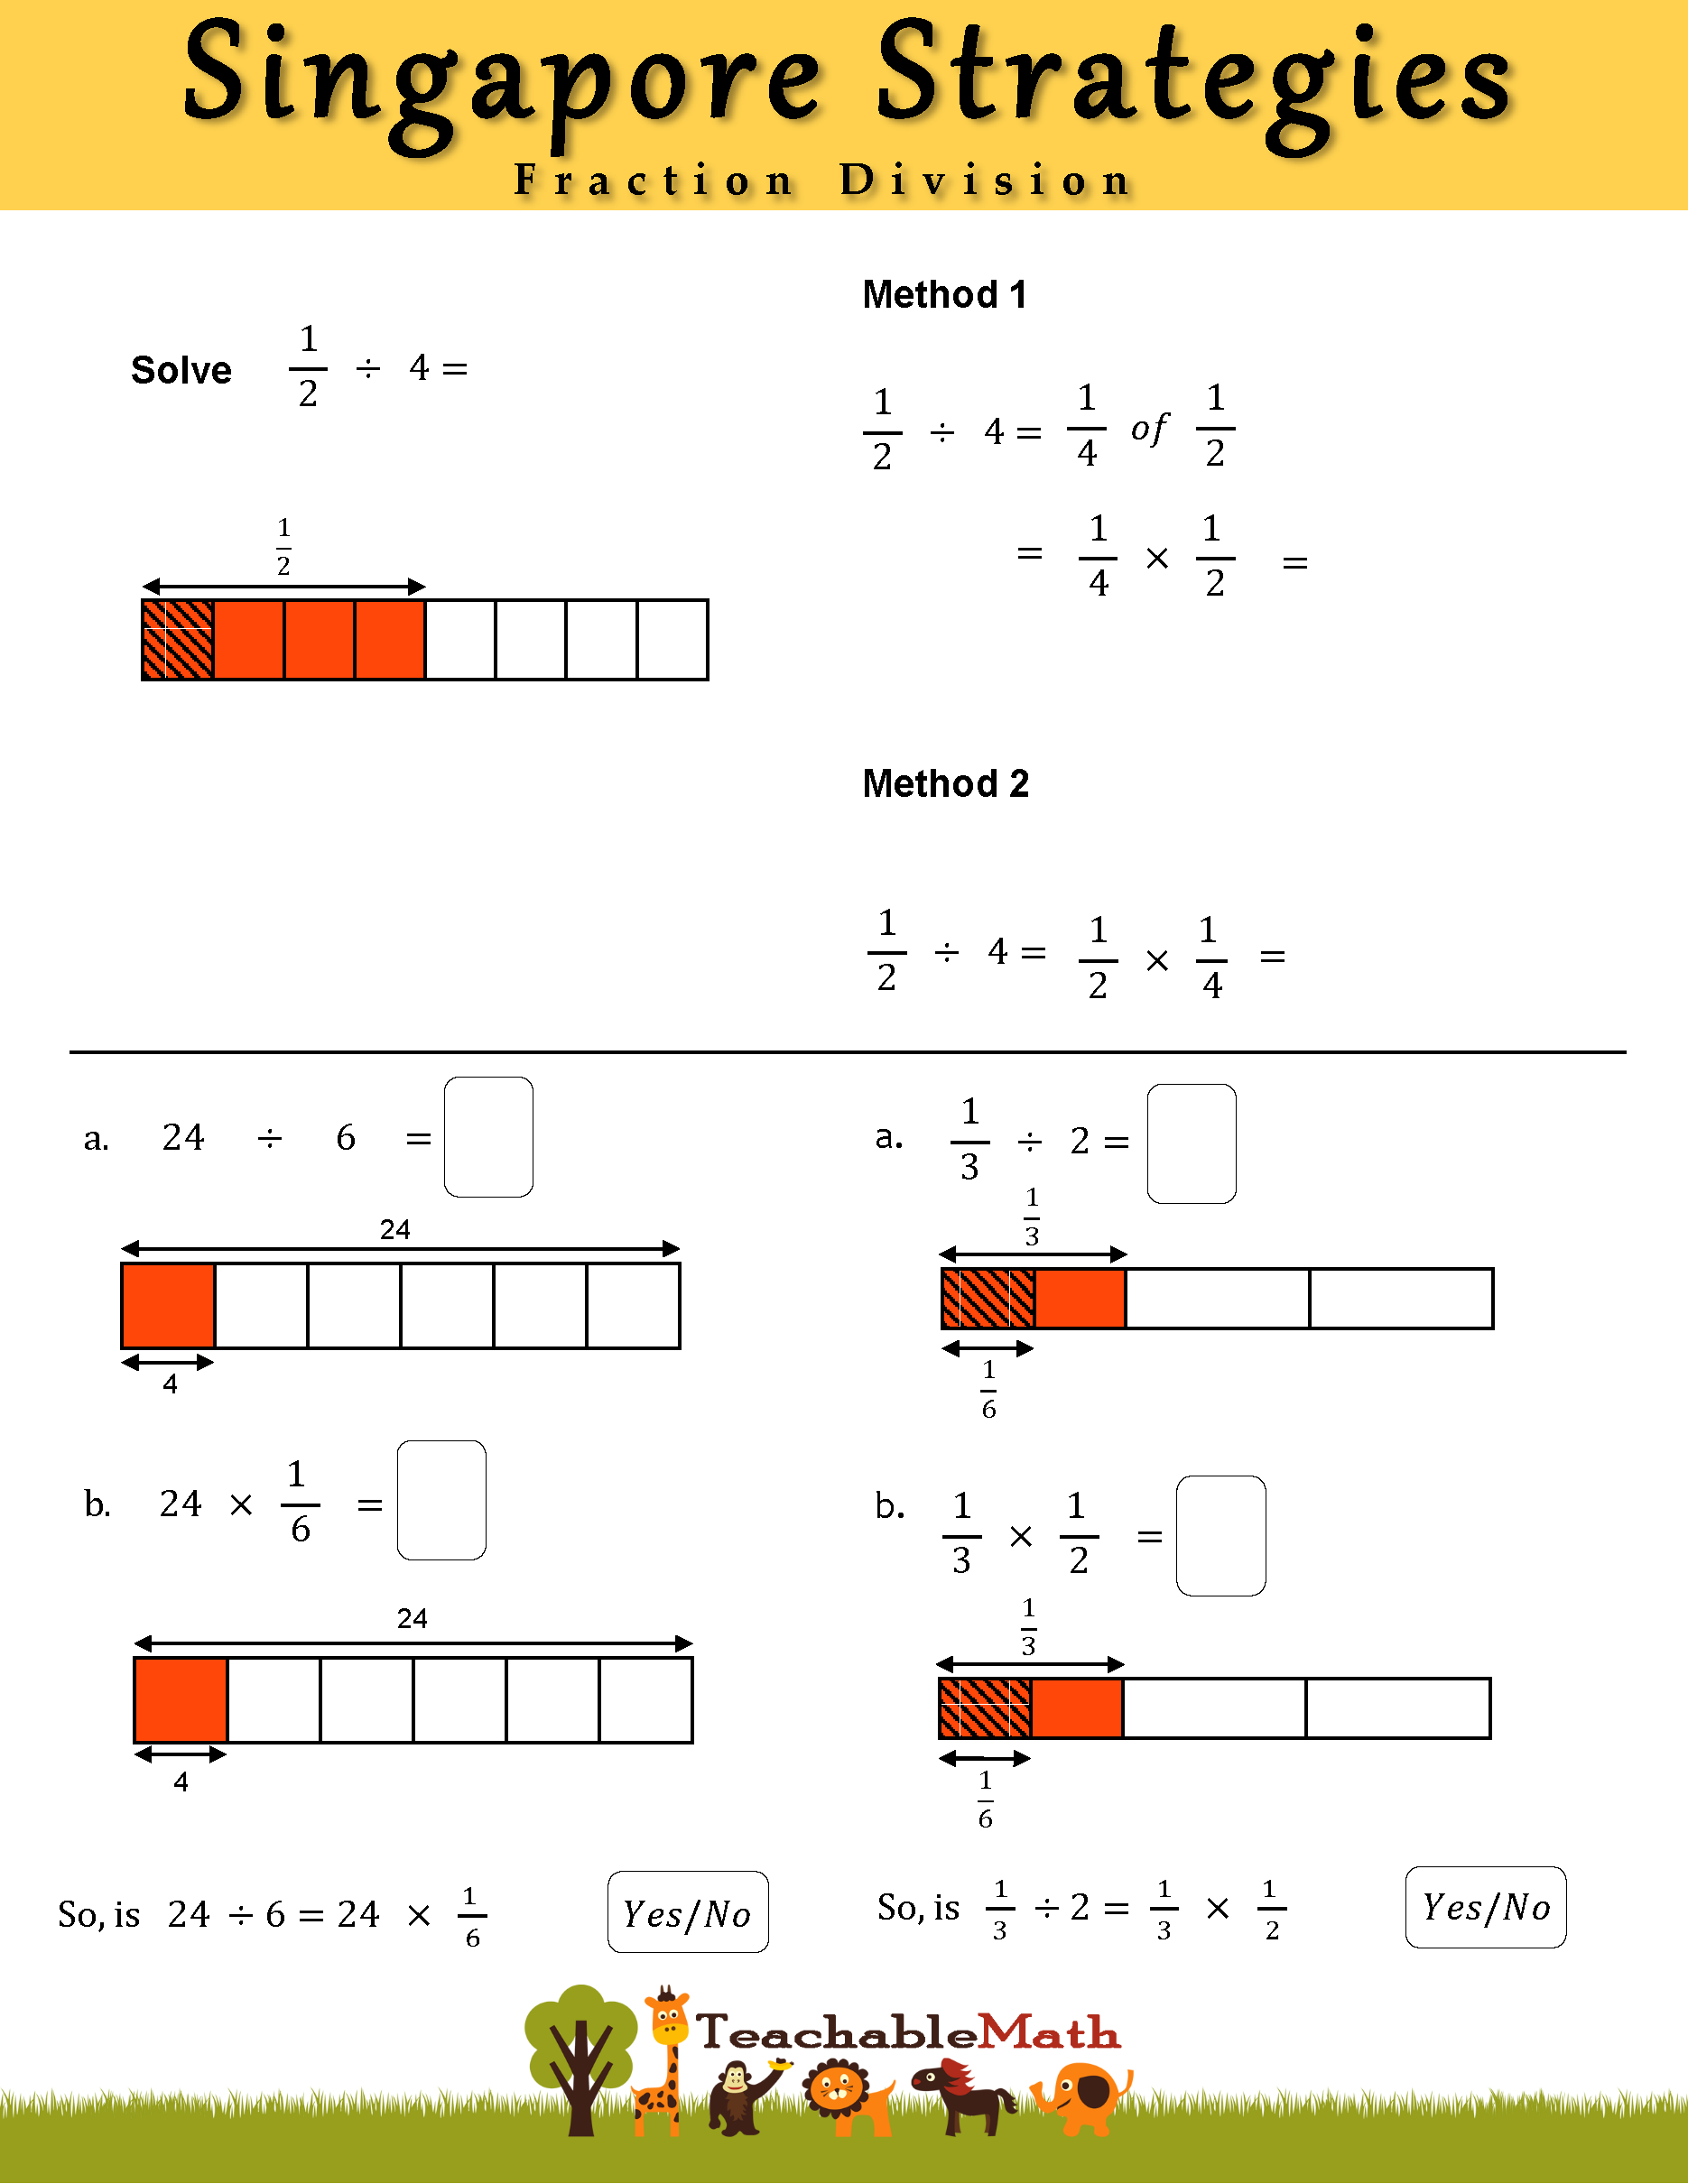 Singapore Strategies Fraction Division Sheet